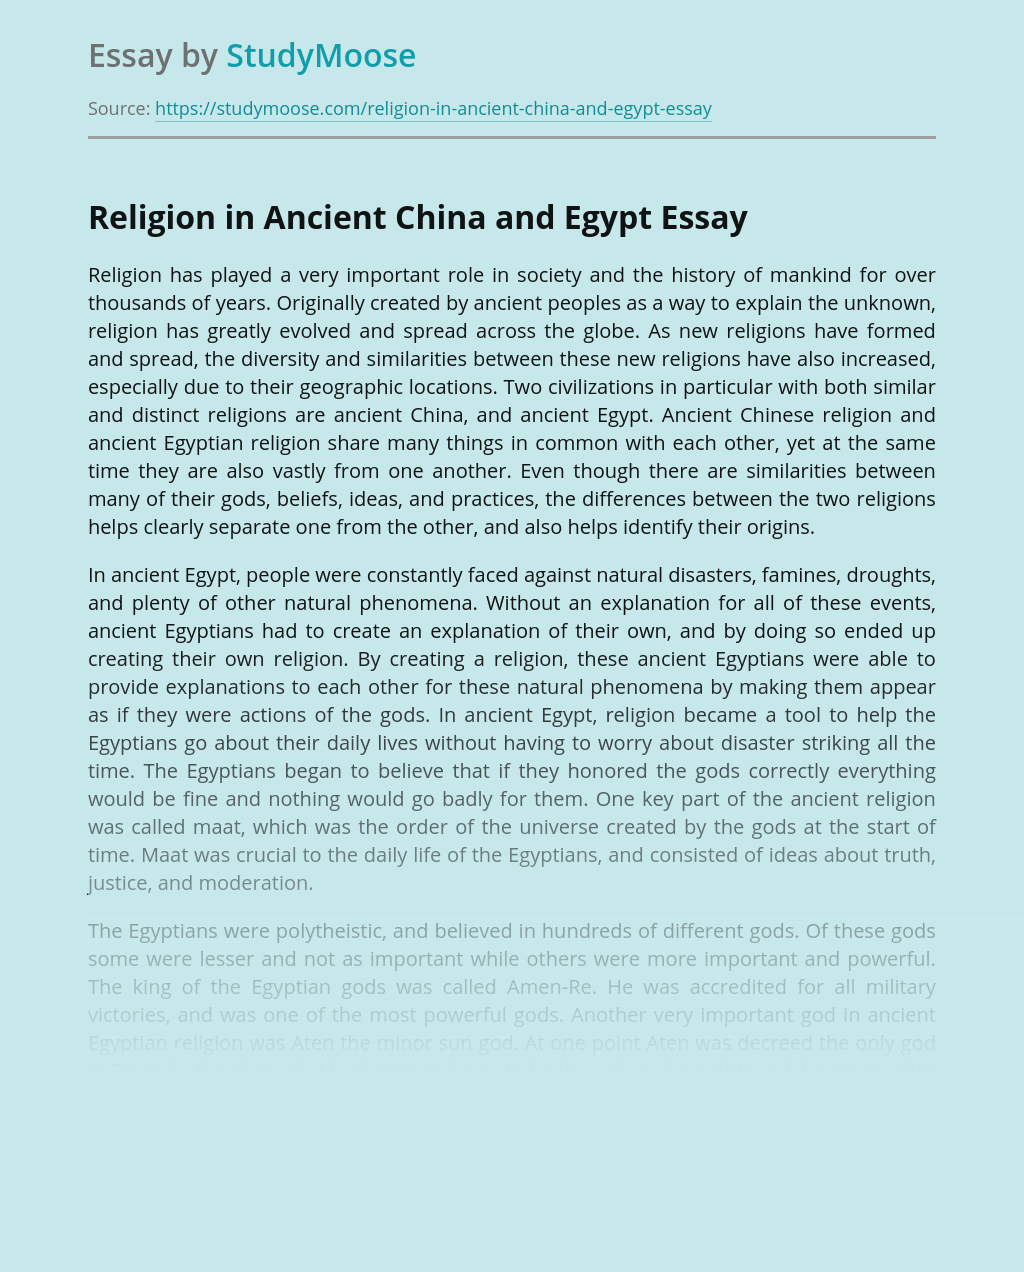 Religion in Ancient China and Egypt